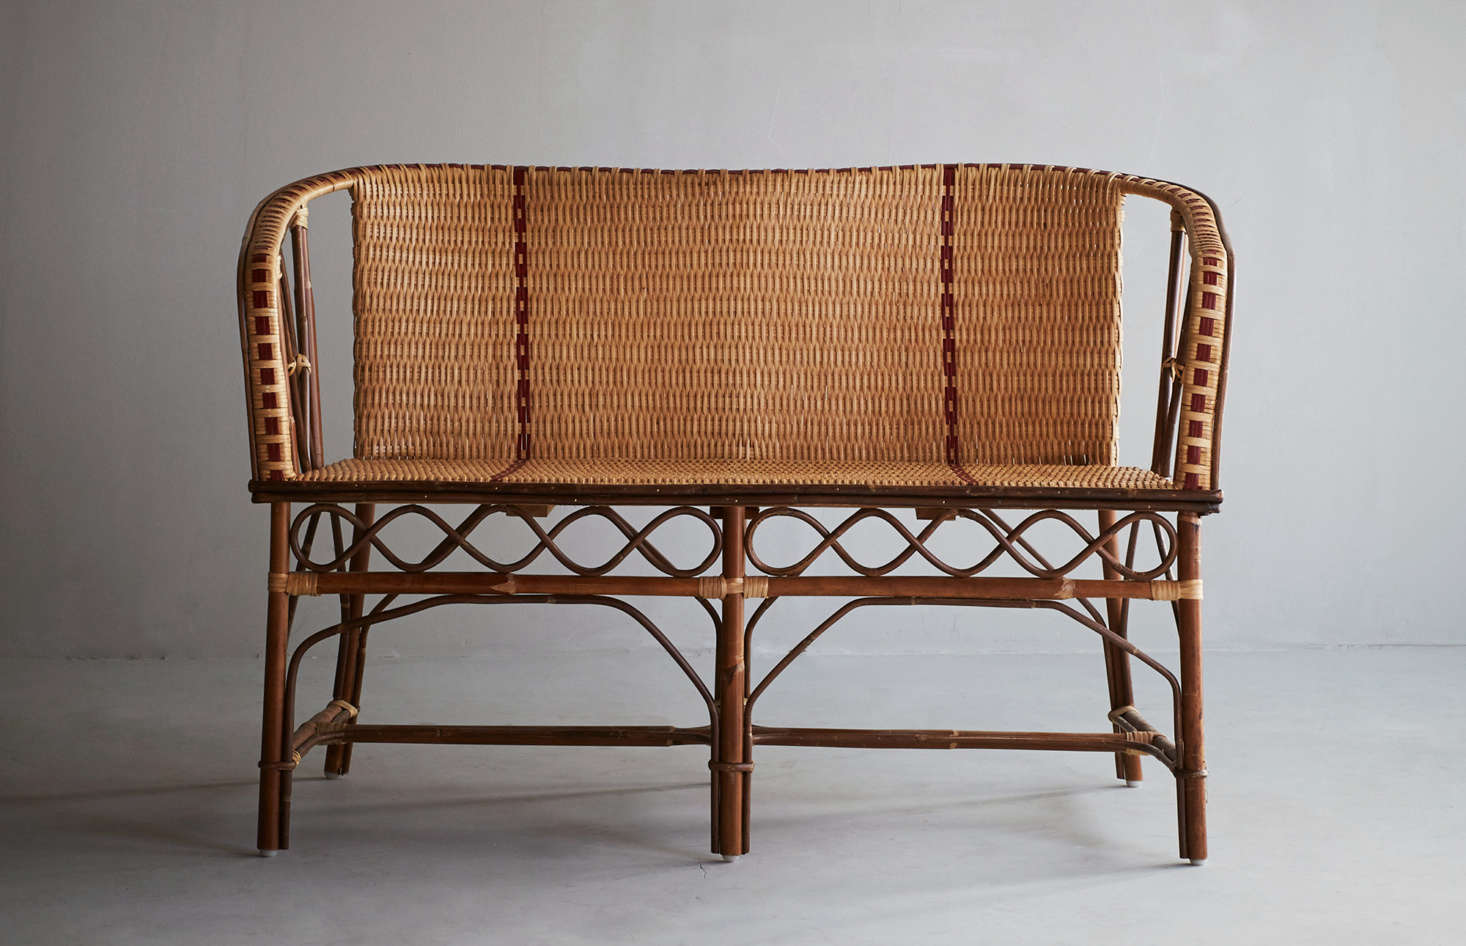 "The Banquette Bagatelle ""is a tribute to the Belle Epoque"" and features rattan best suited for indoor use or outdoor use on sunny days; SEK4,390 at Artilleriet."